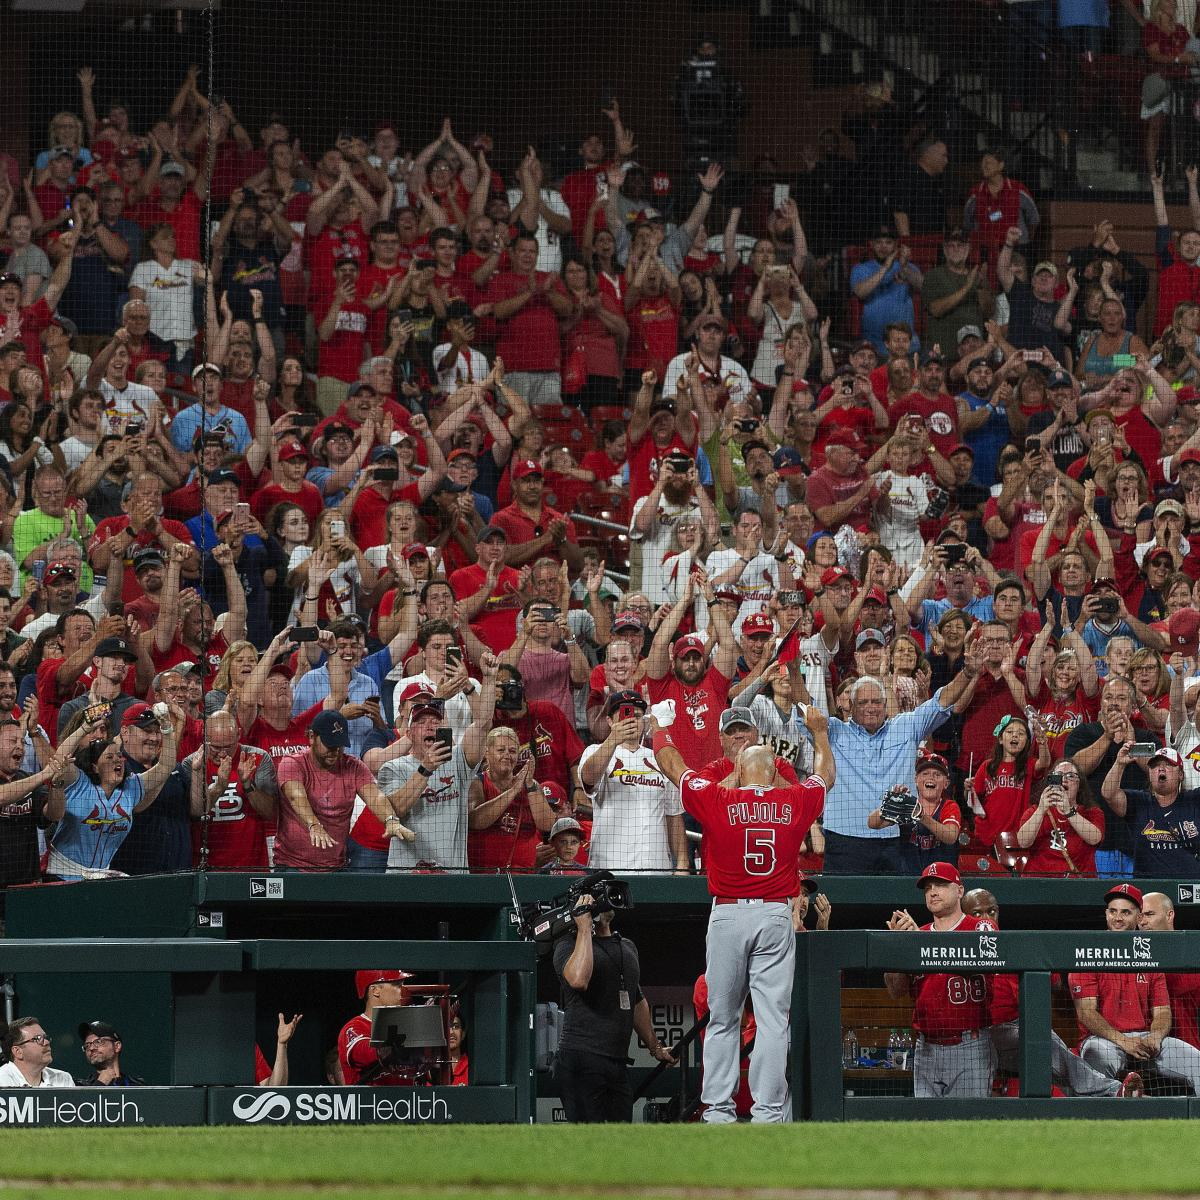 It was Albert Pujols weekend at Busch Stadium, and in case it was the 39-year-old's final trip to town, St. Louis Cardinals fans made sure to show him plenty of love throughout the three-game series...